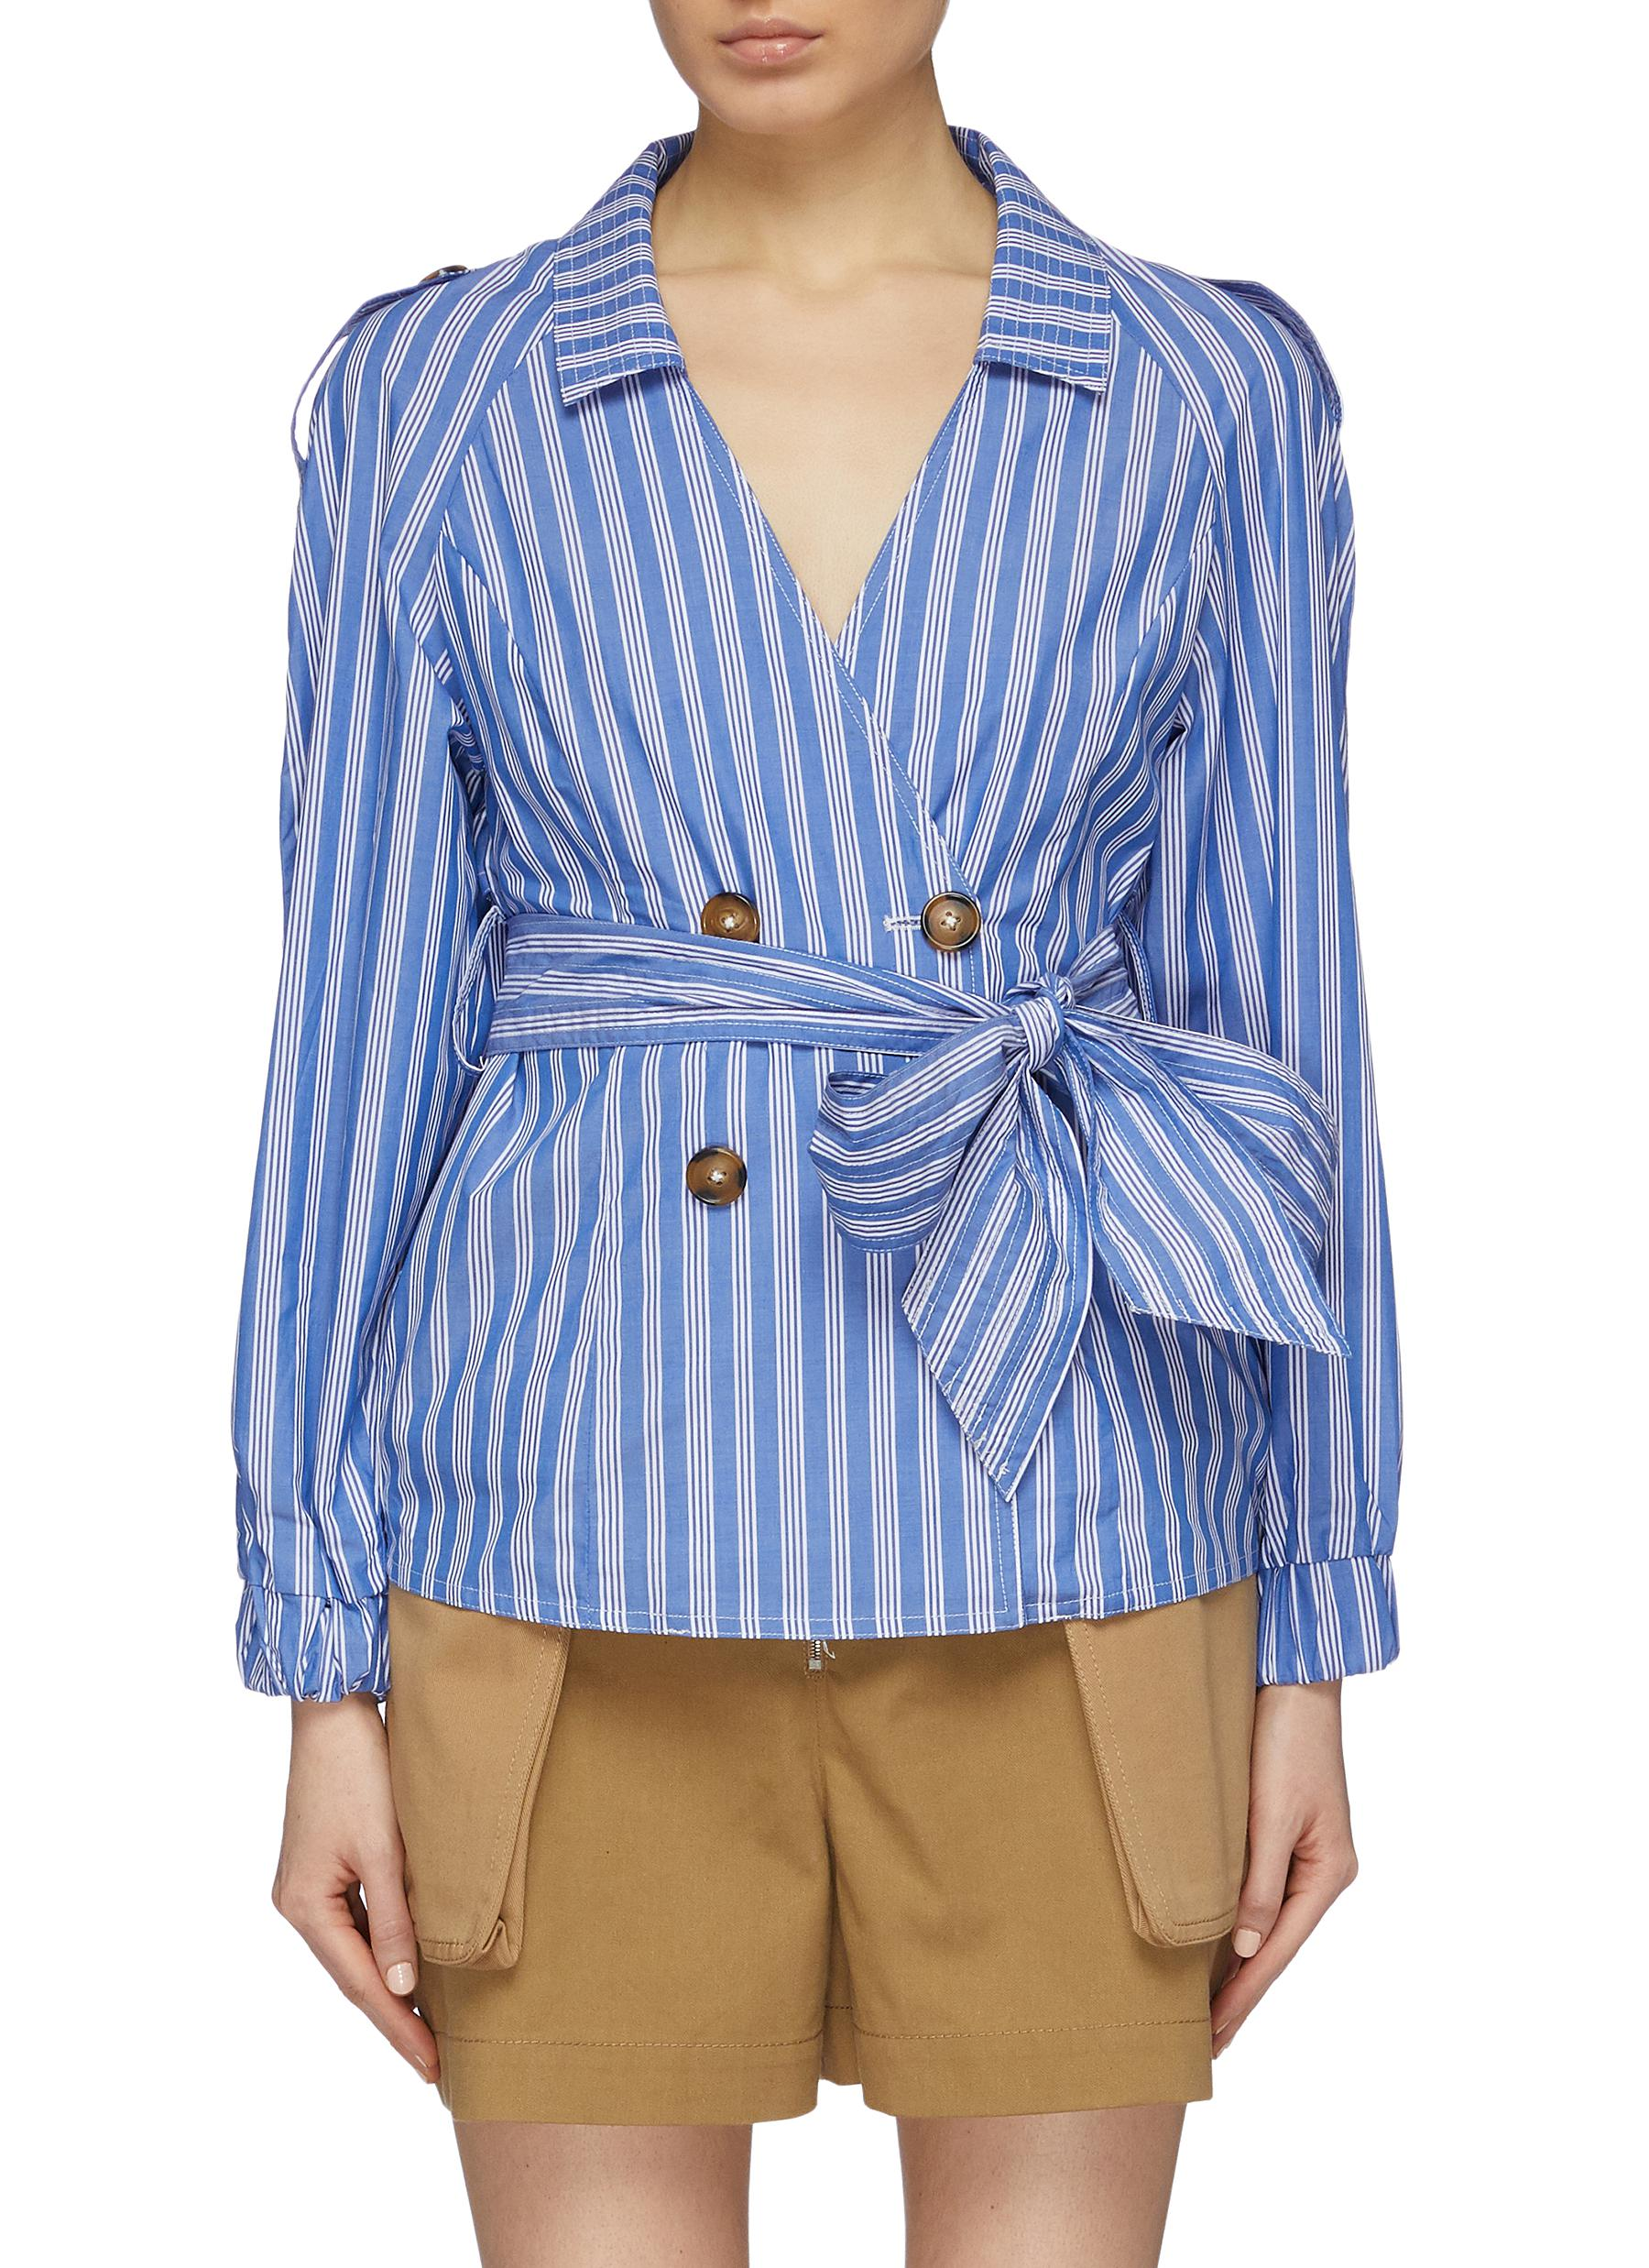 Motivations belted stripe double breasted shirt by C/Meo Collective